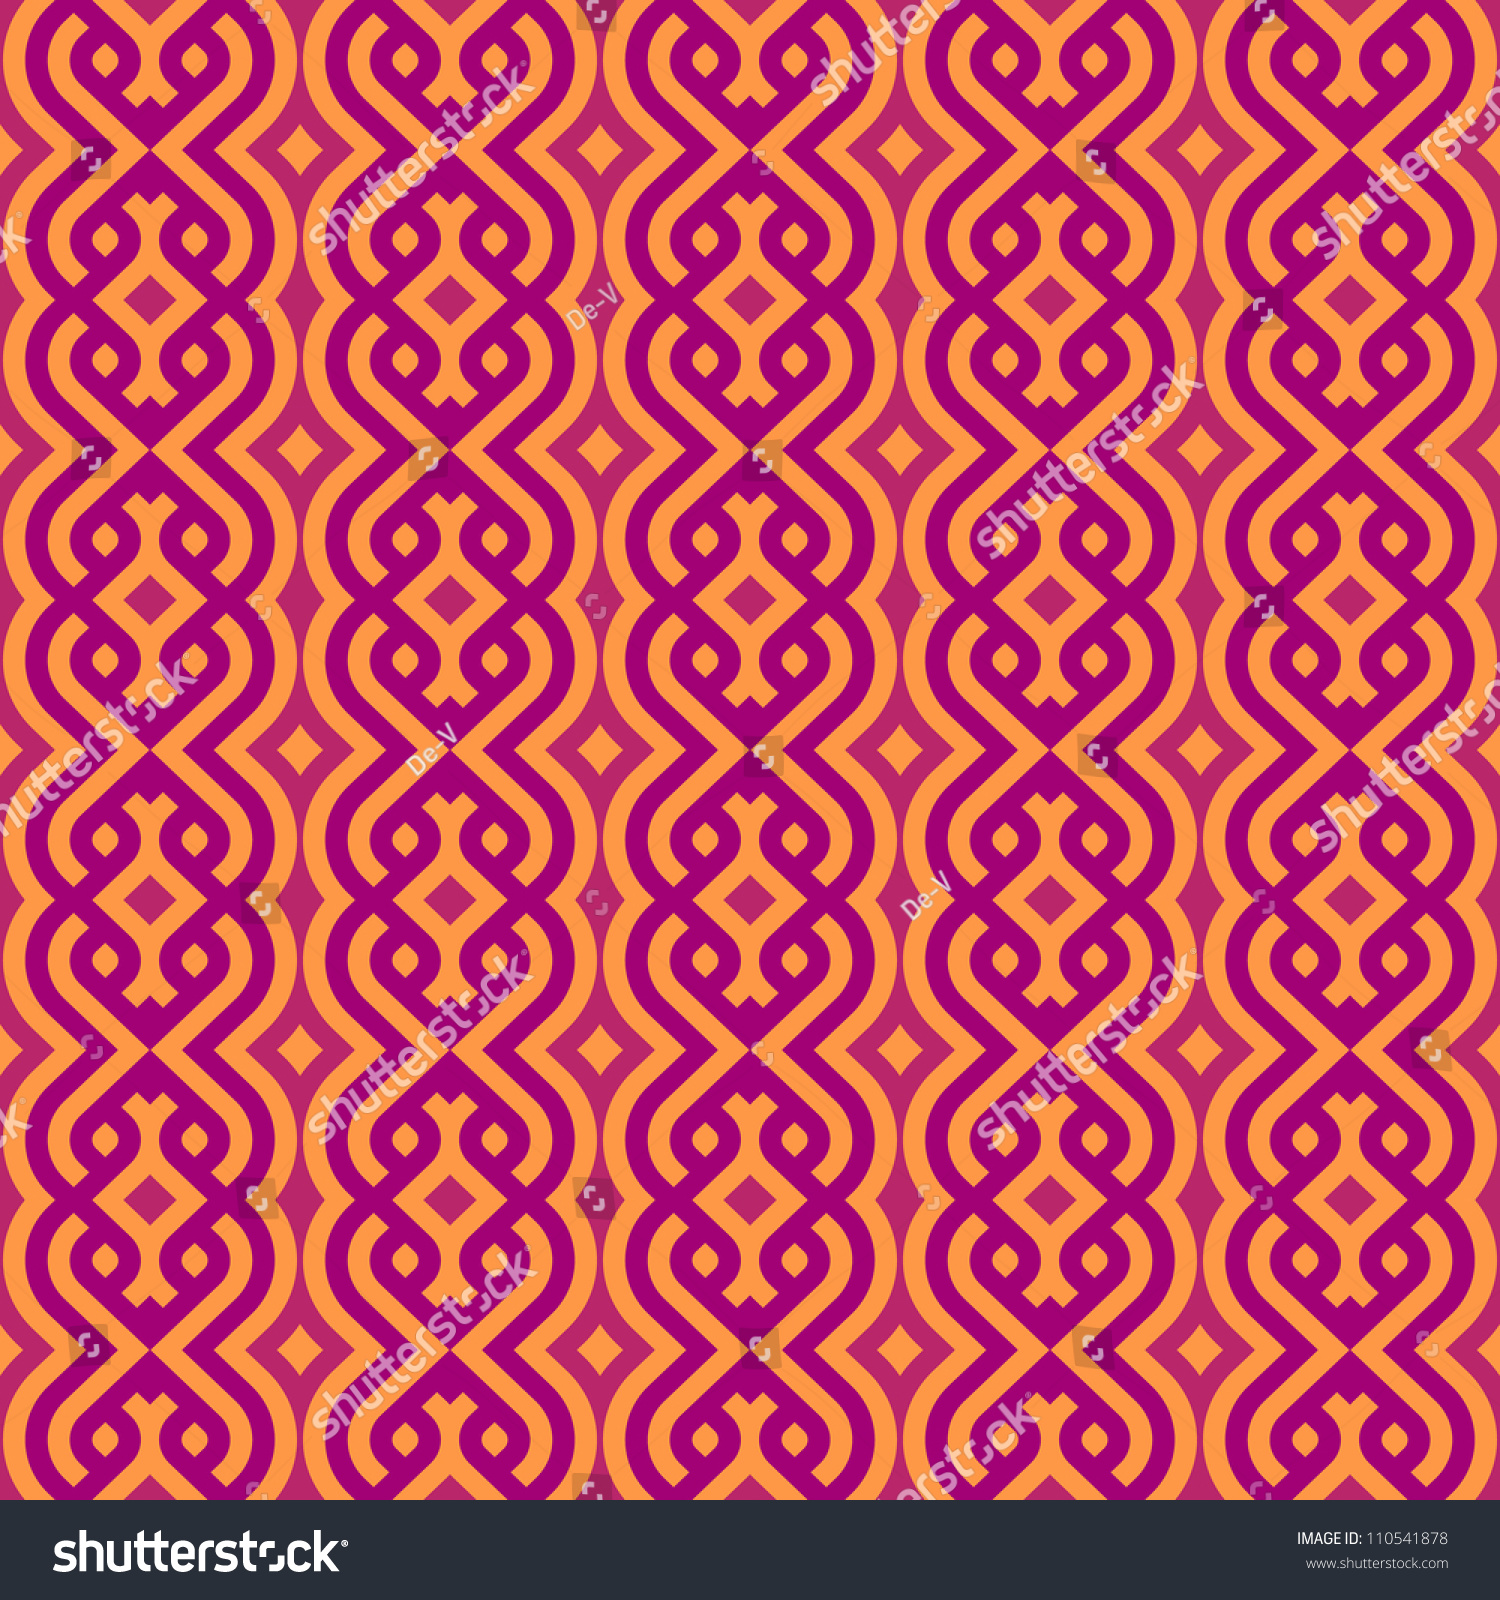 Abstract Vintage Geometric Wallpaper Pattern Seamless